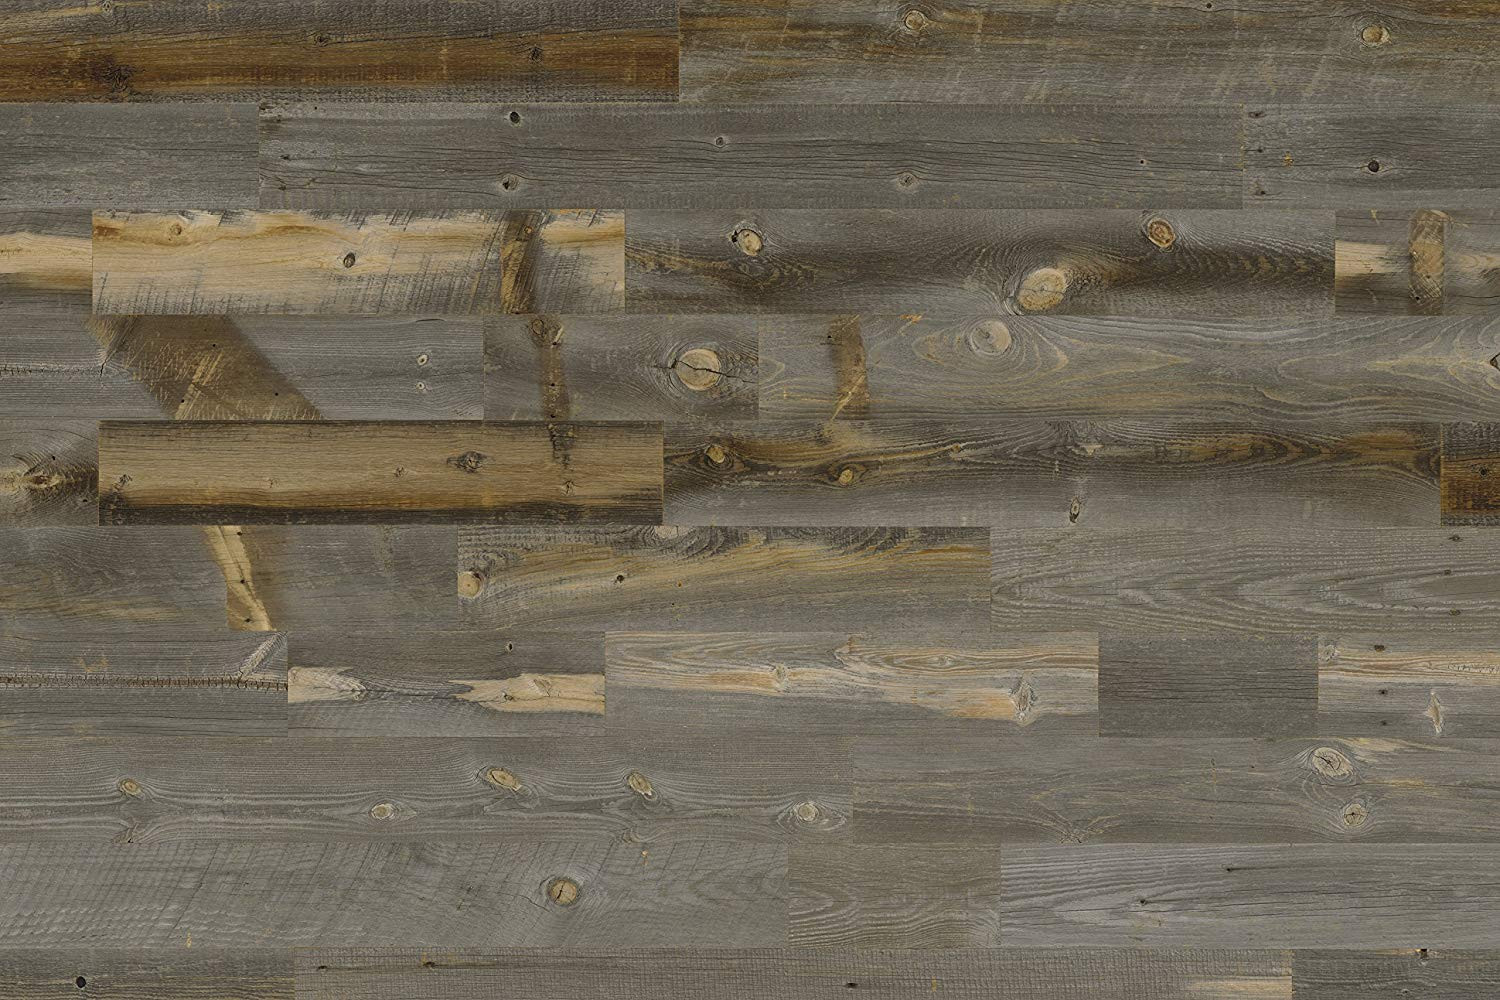 5 inch vs 3 inch hardwood flooring of amazon com stikwood reclaimed weathered wood silver gray brown 20 in amazon com stikwood reclaimed weathered wood silver gray brown 20 square feet easy peel and stick application baby